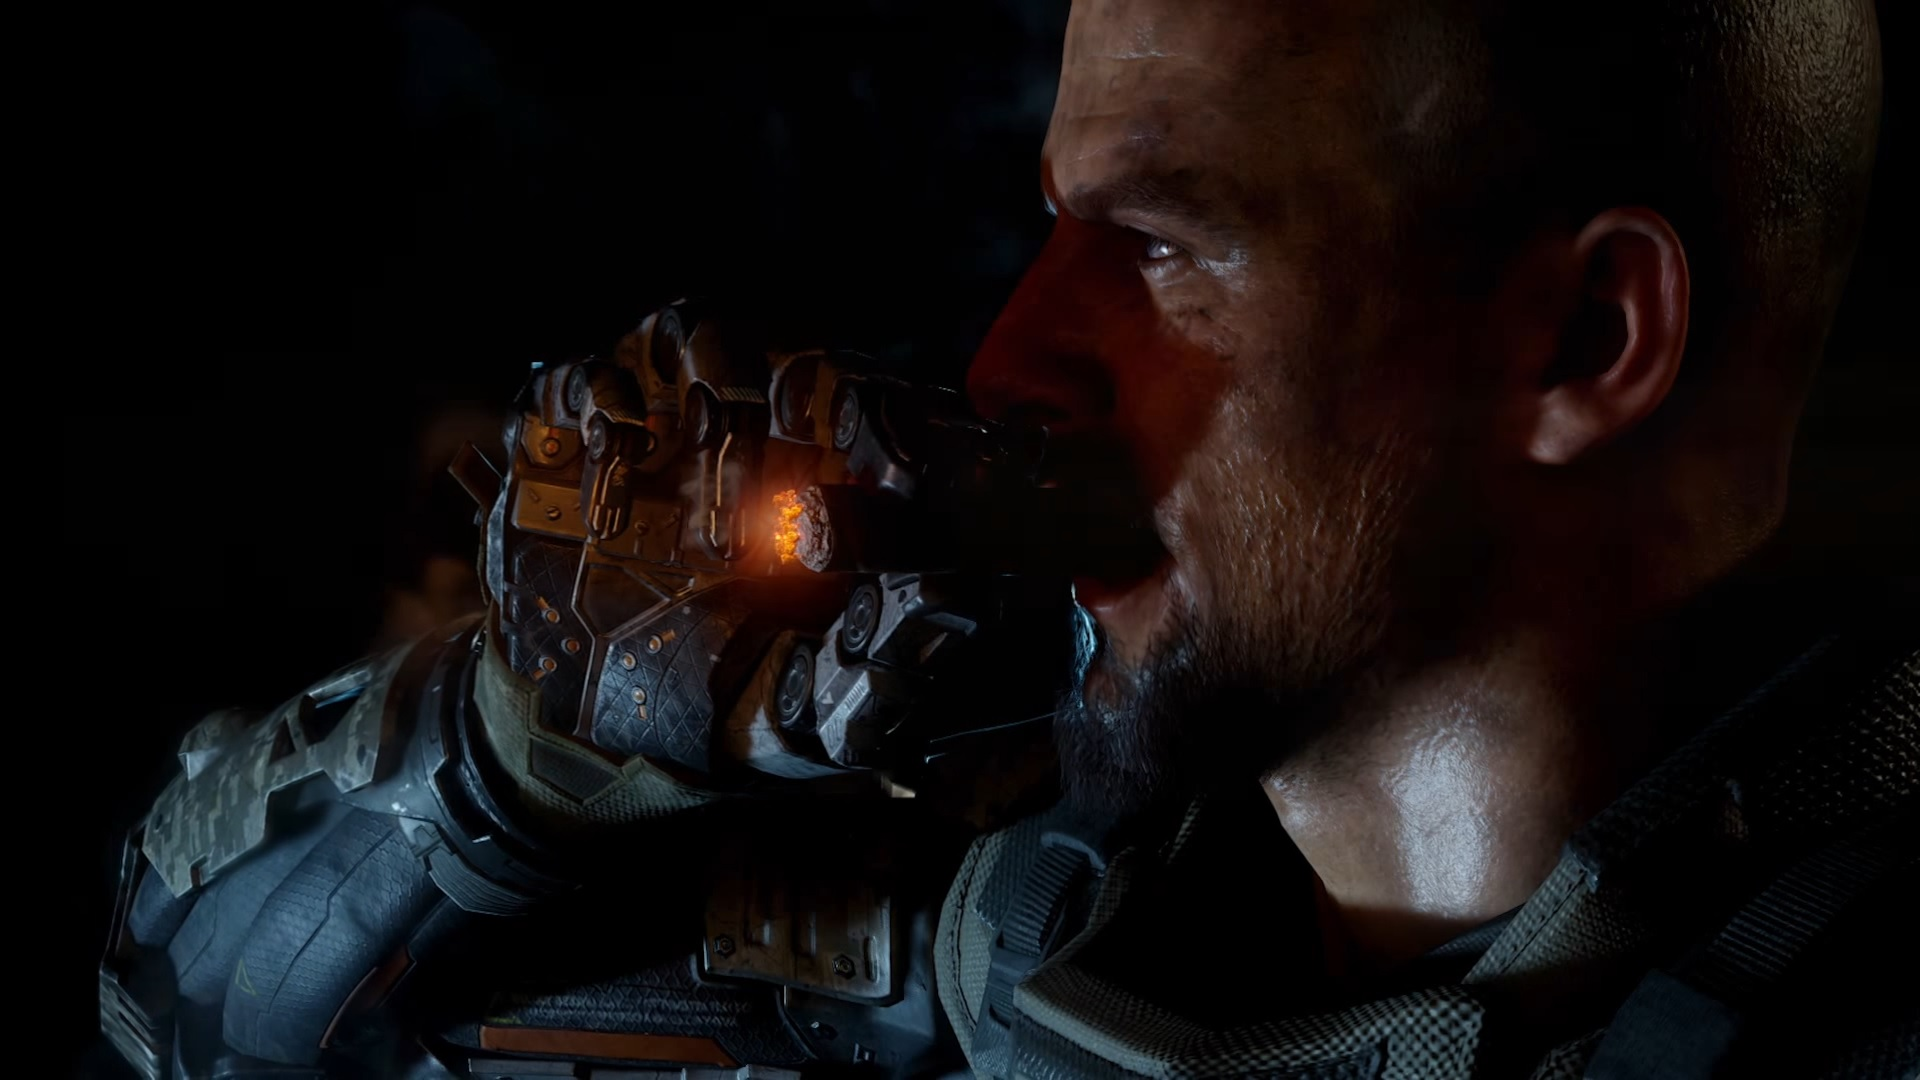 Call of Duty Black Ops III - VGProfessional Review (5)